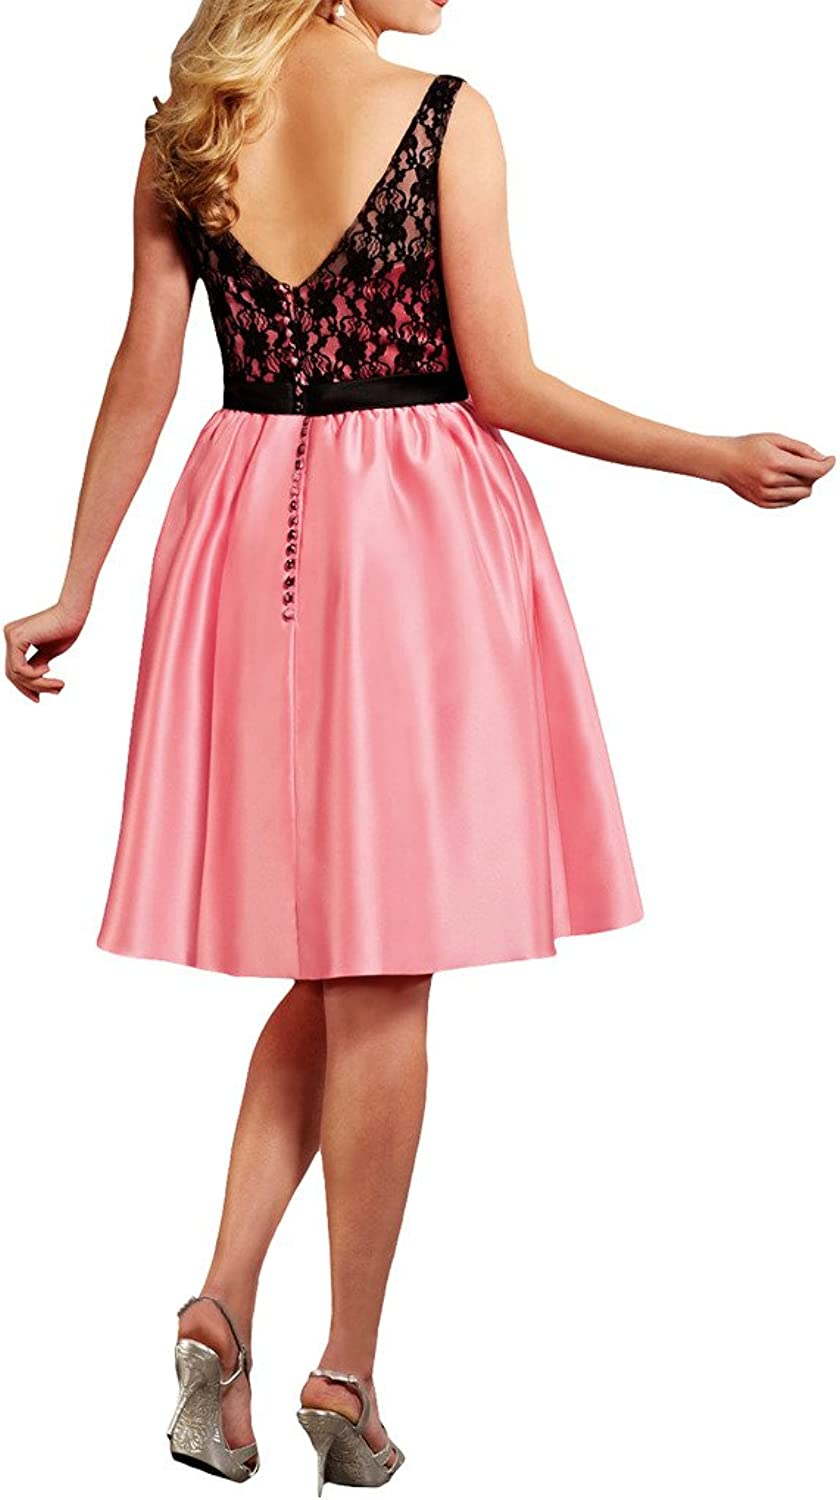 La Mariee Girl's Beautiful Short Mini Homecoming Cocktail Dresses with Bowknot